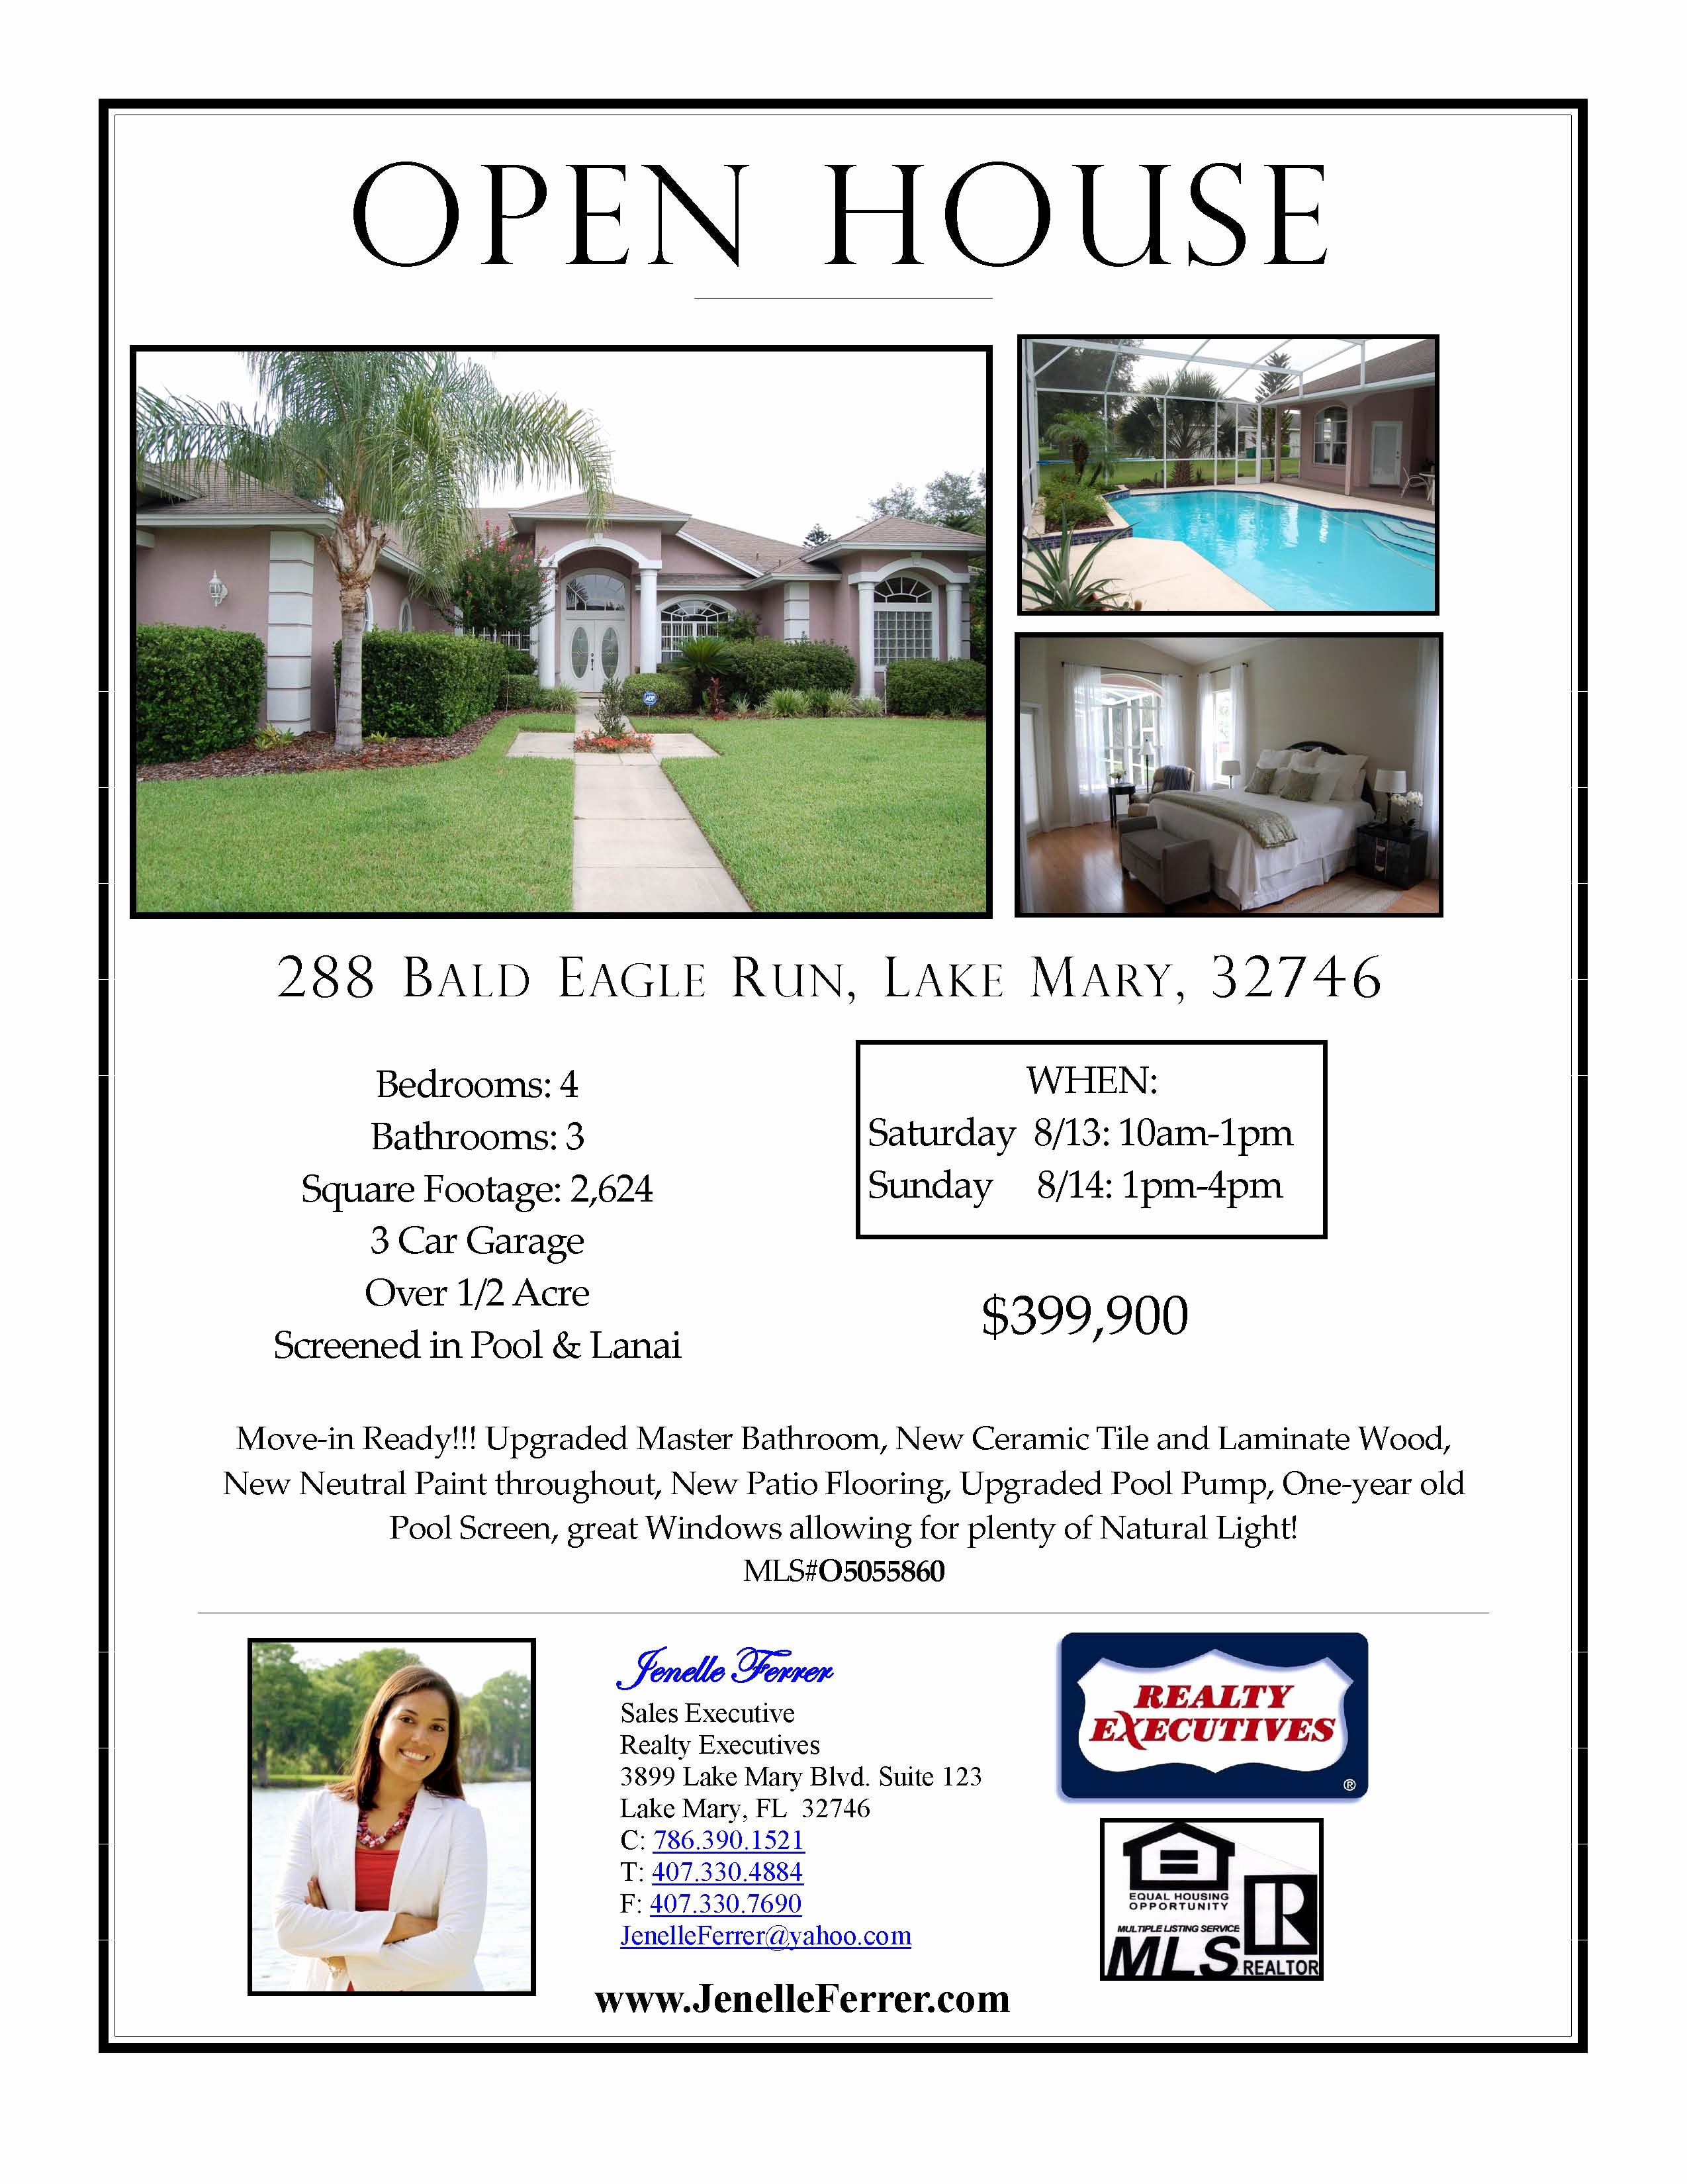 Open House Flyers for School Beautiful Lake Mary Fl Home